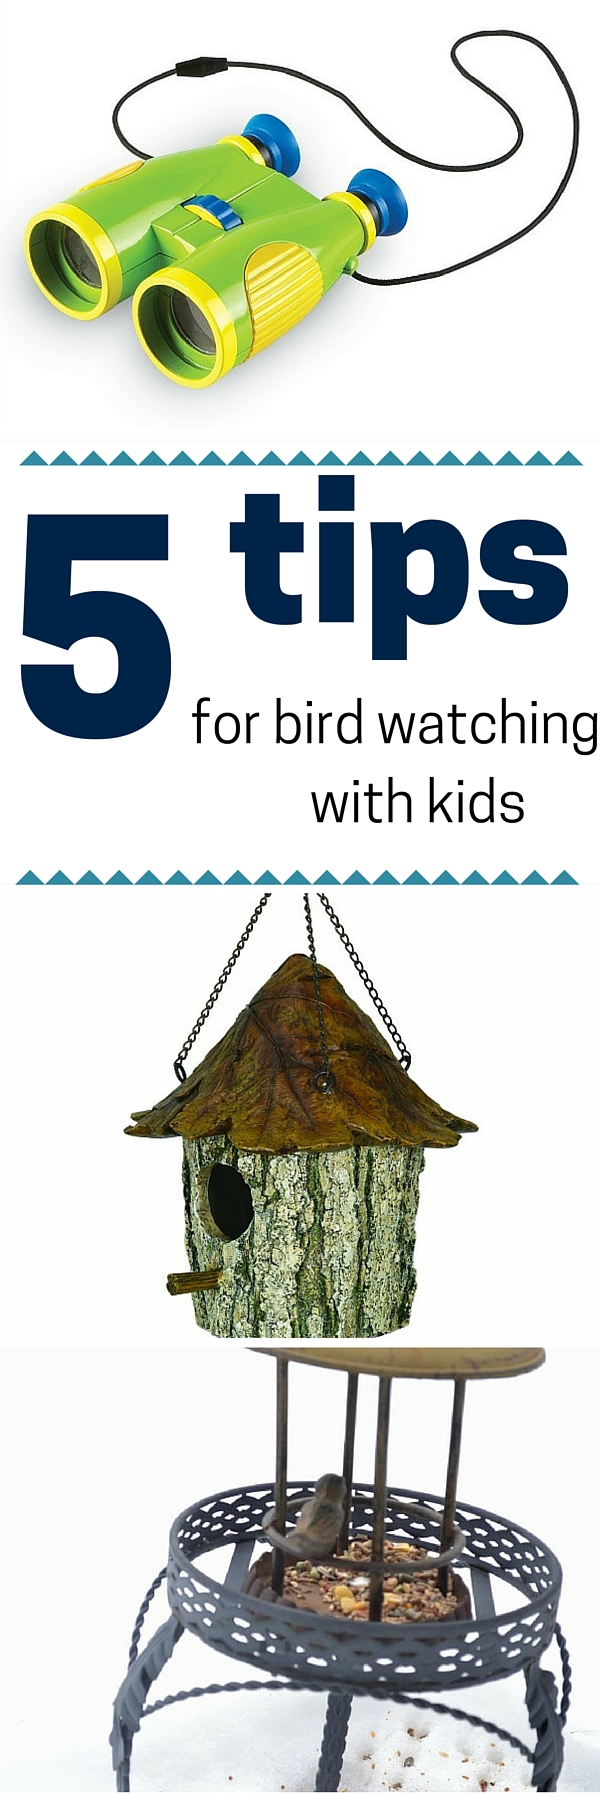 5 tips for birdwatching with kids